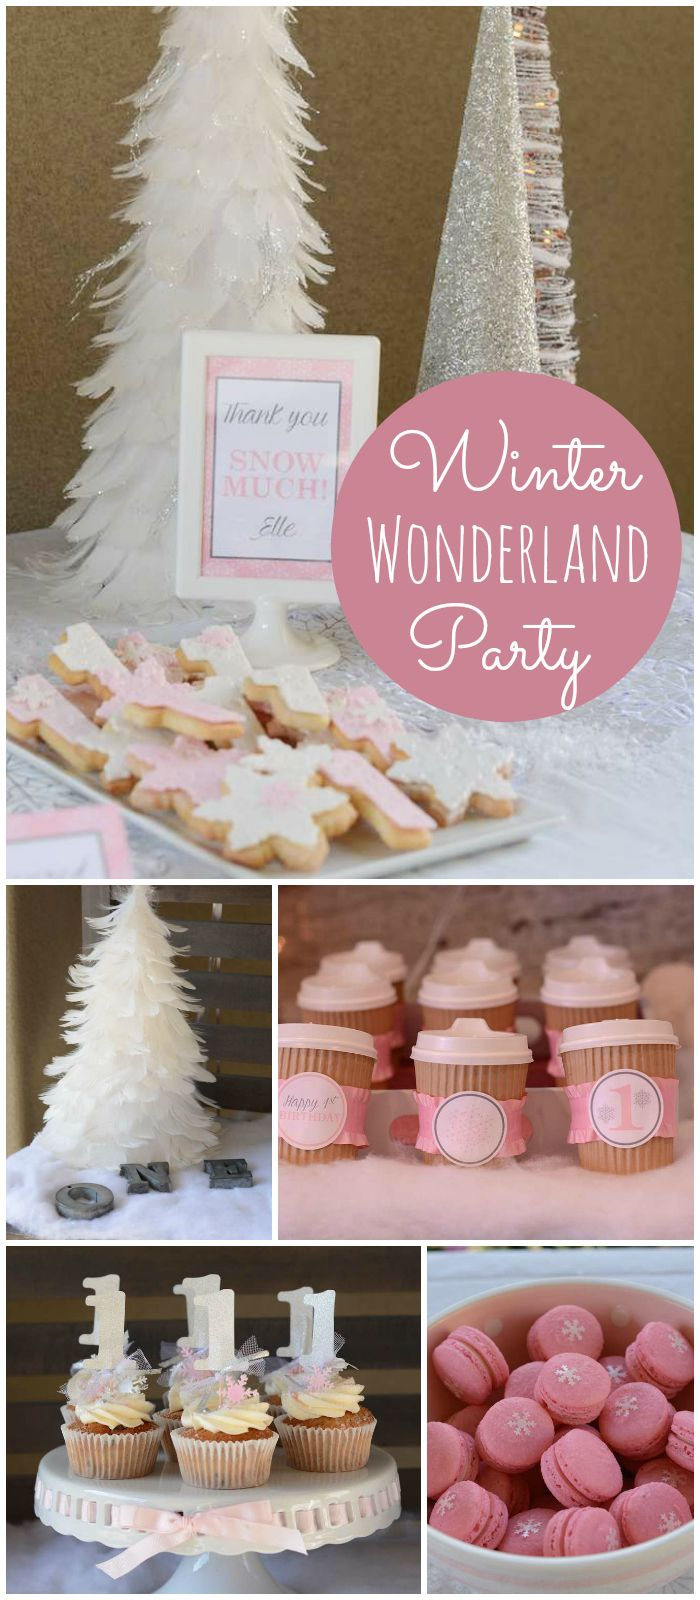 I'm loving this gorgeous pink winter wonderland party with hot cocoa and macarons! See more party planning ideas at CatchMyParty.com!